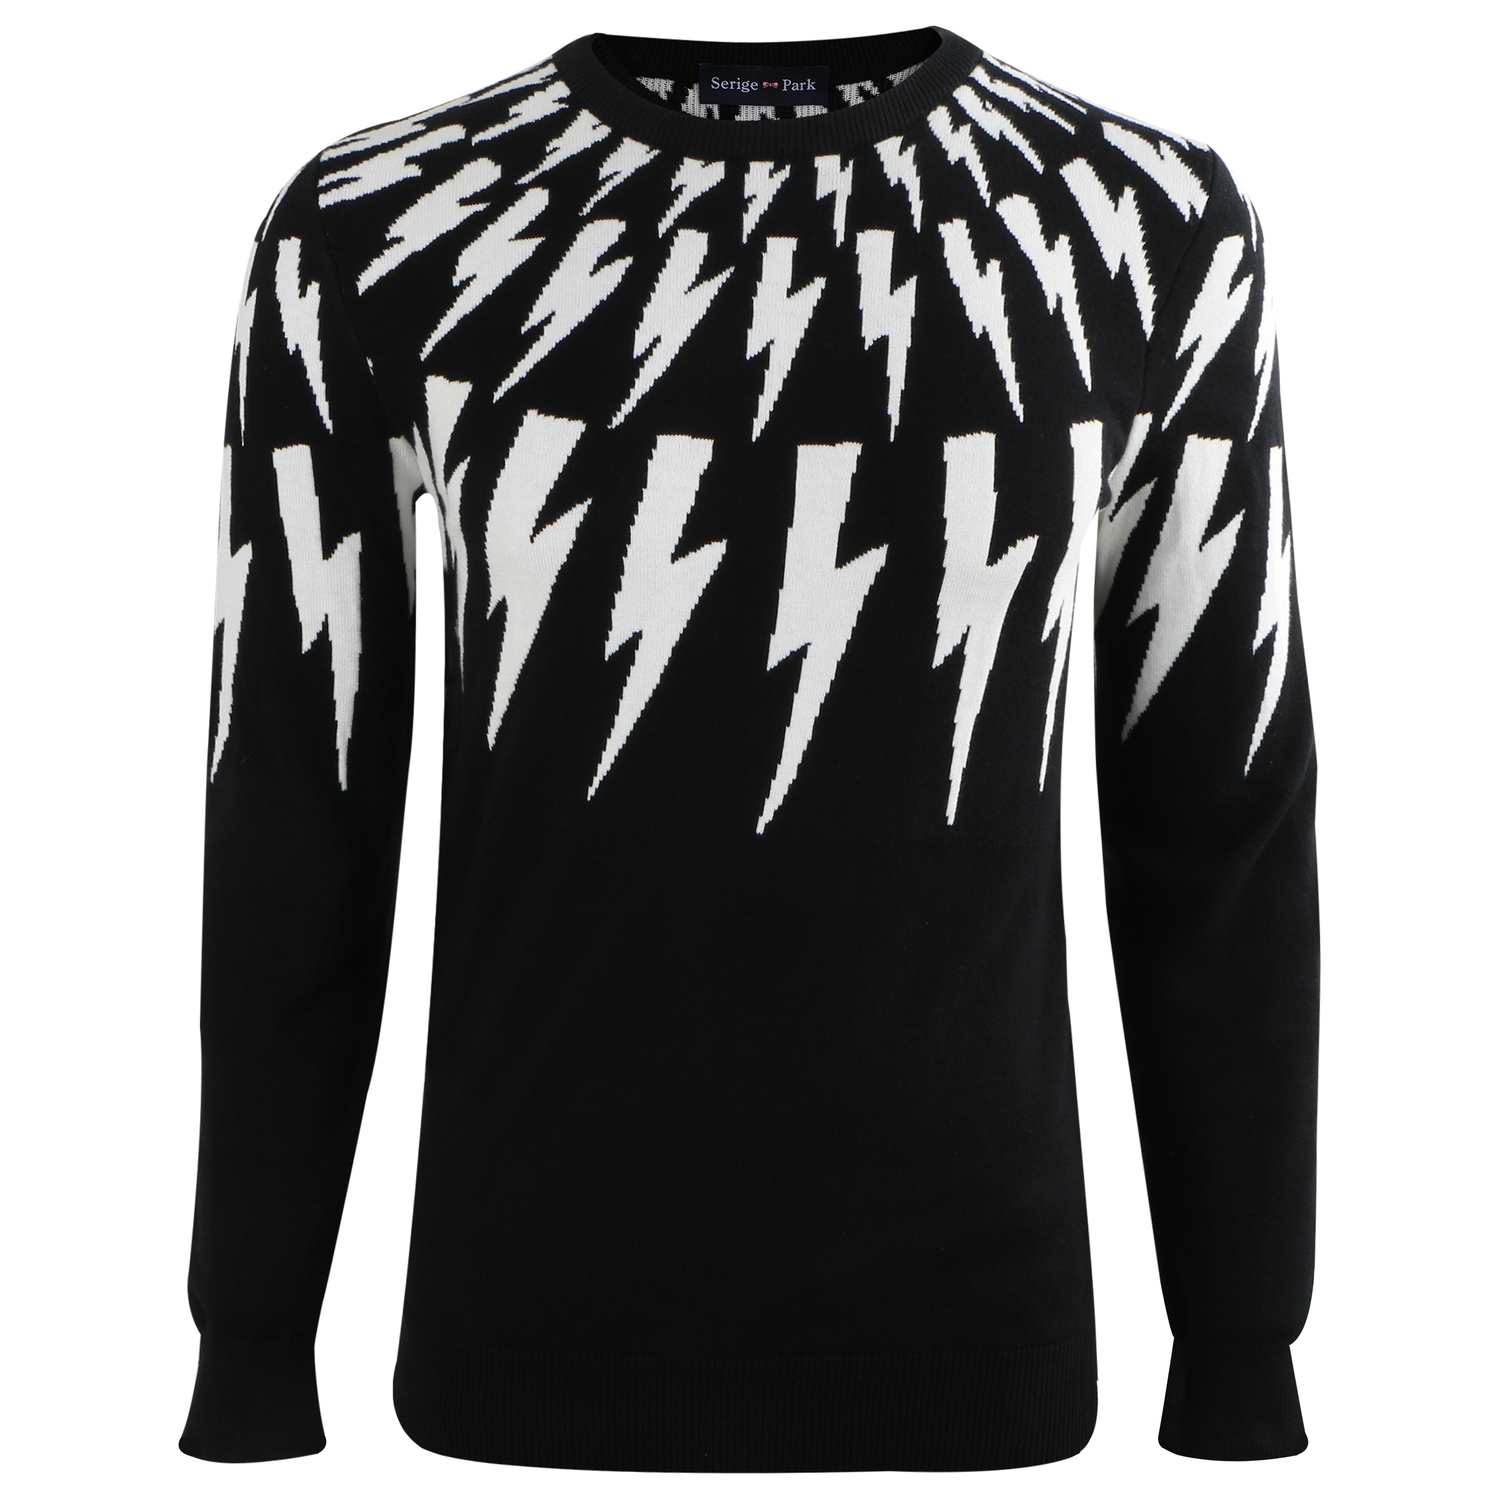 2019 New Pullover Spring-winter Round Neck Cotton Sweater High Quality Brand Men Style Autumn Collection With Superior Material